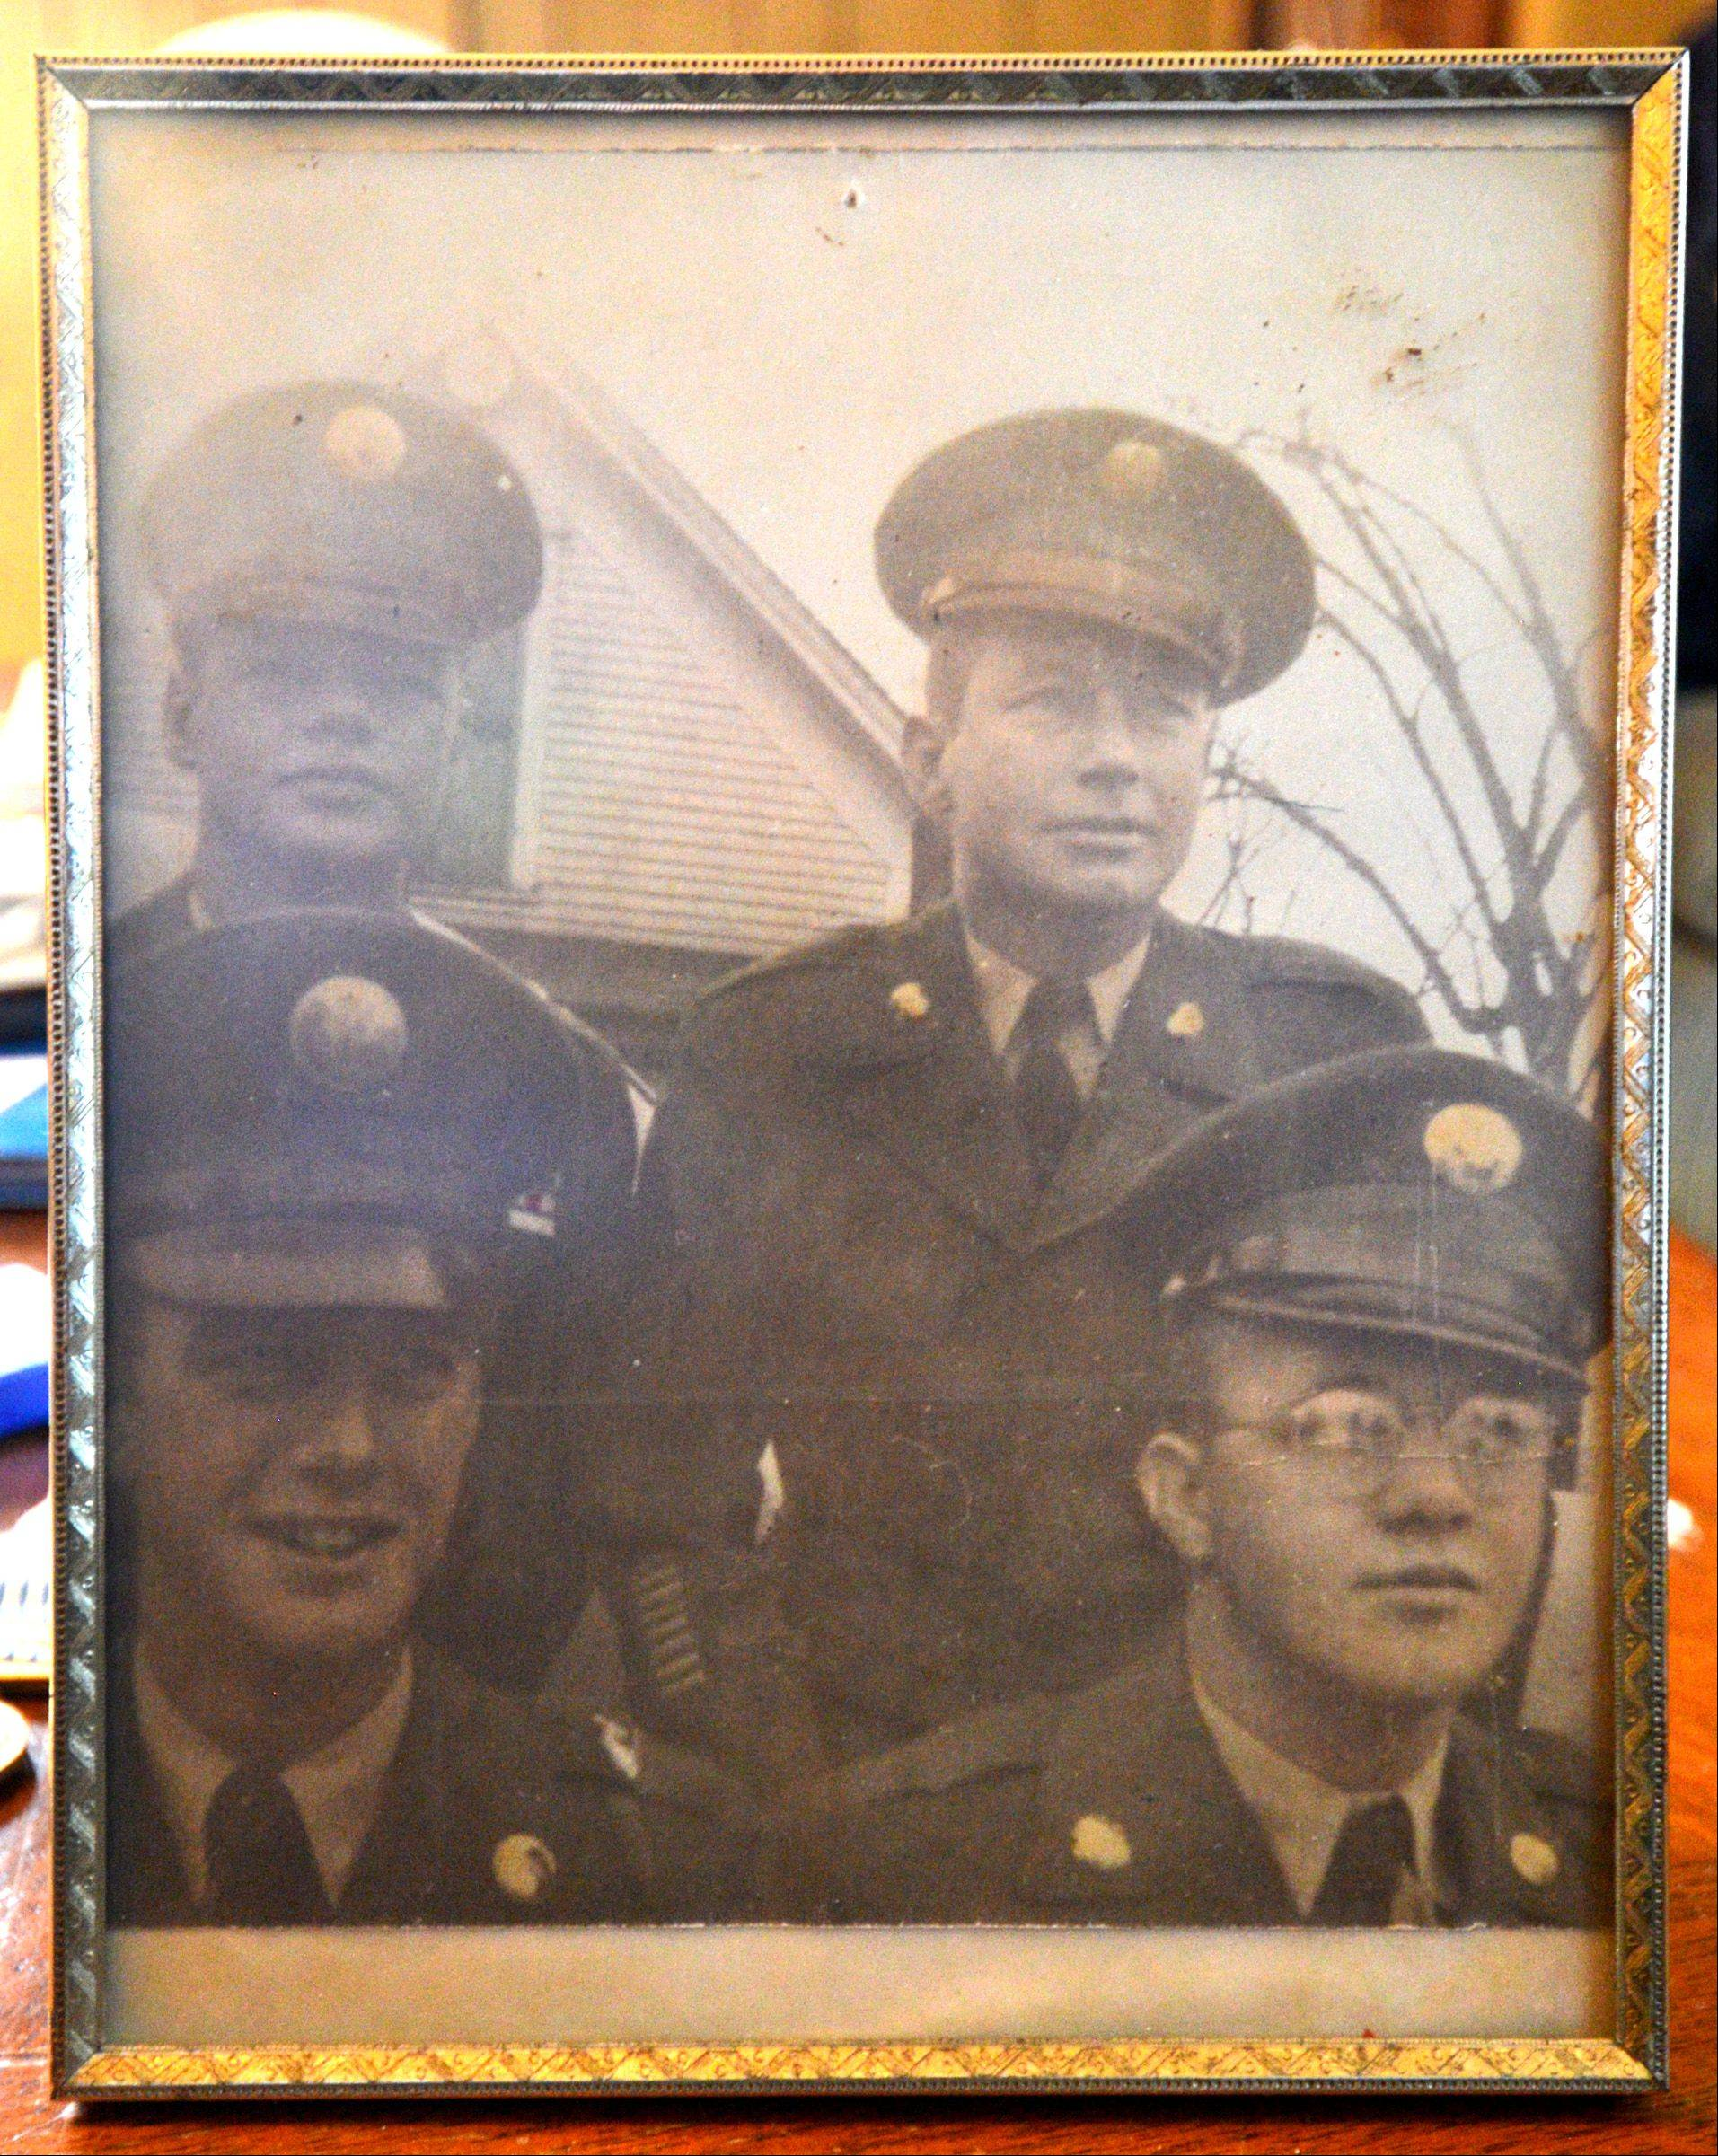 Realizing now how worried his poor mother must have been, Virgil Banker, lower right, says he and his three brothers all fought in the Korean War and returned home.